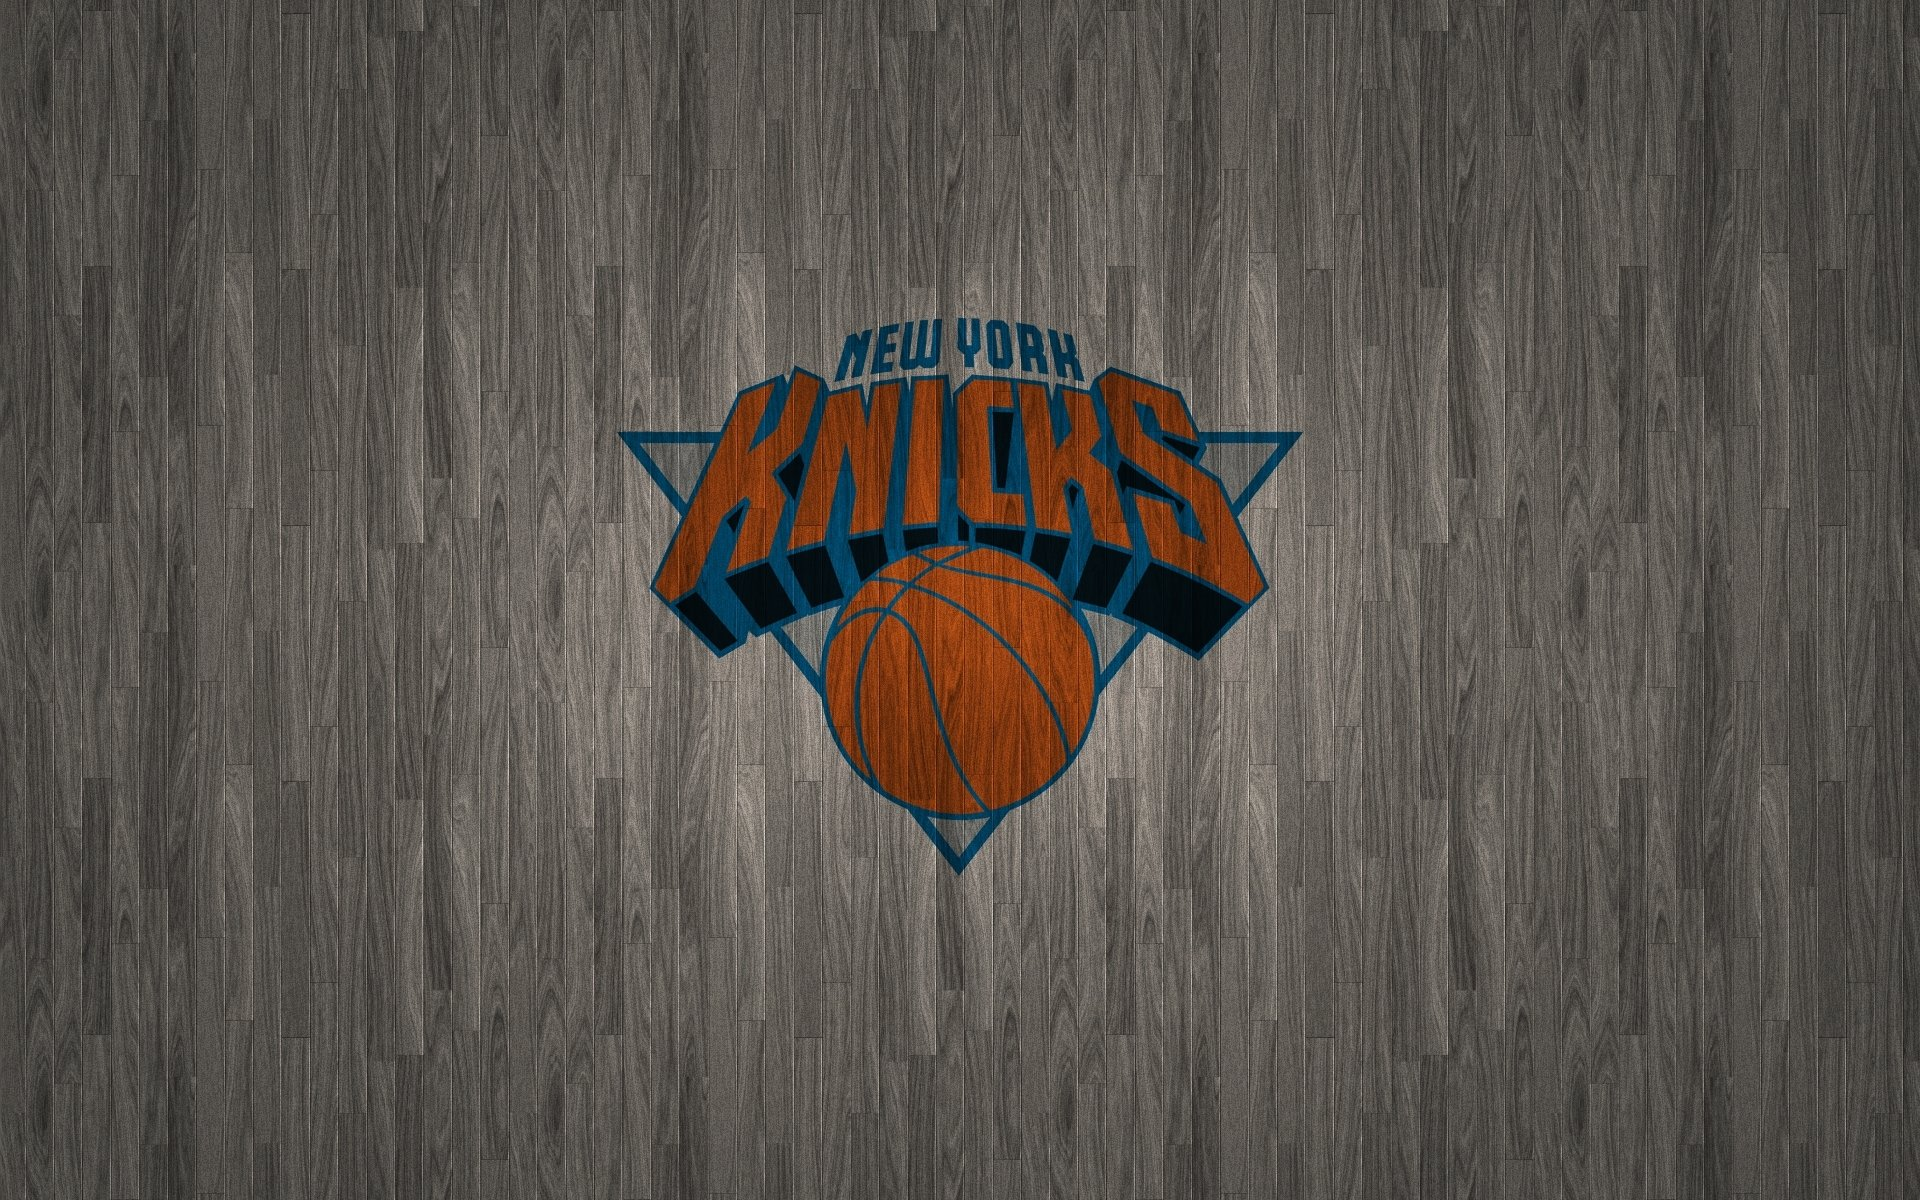 16 New York Knicks Hd Wallpapers Background Images Wallpaper Abyss